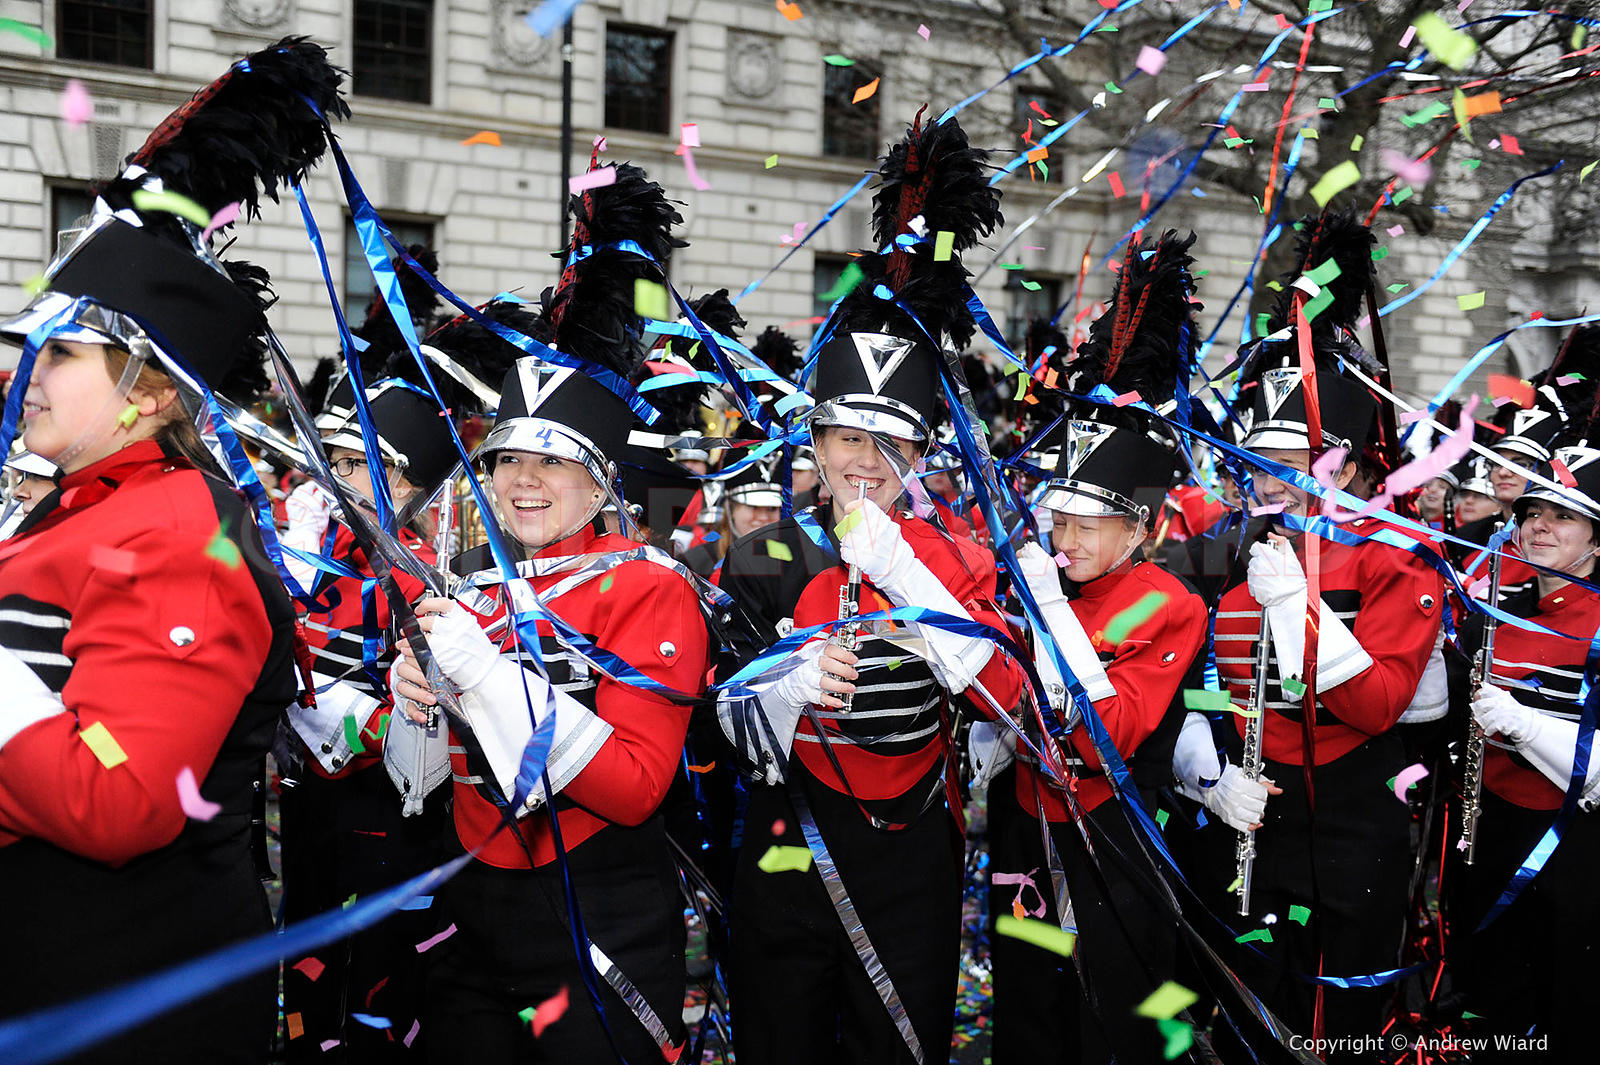 LNYPD - London New Years' Day Parade